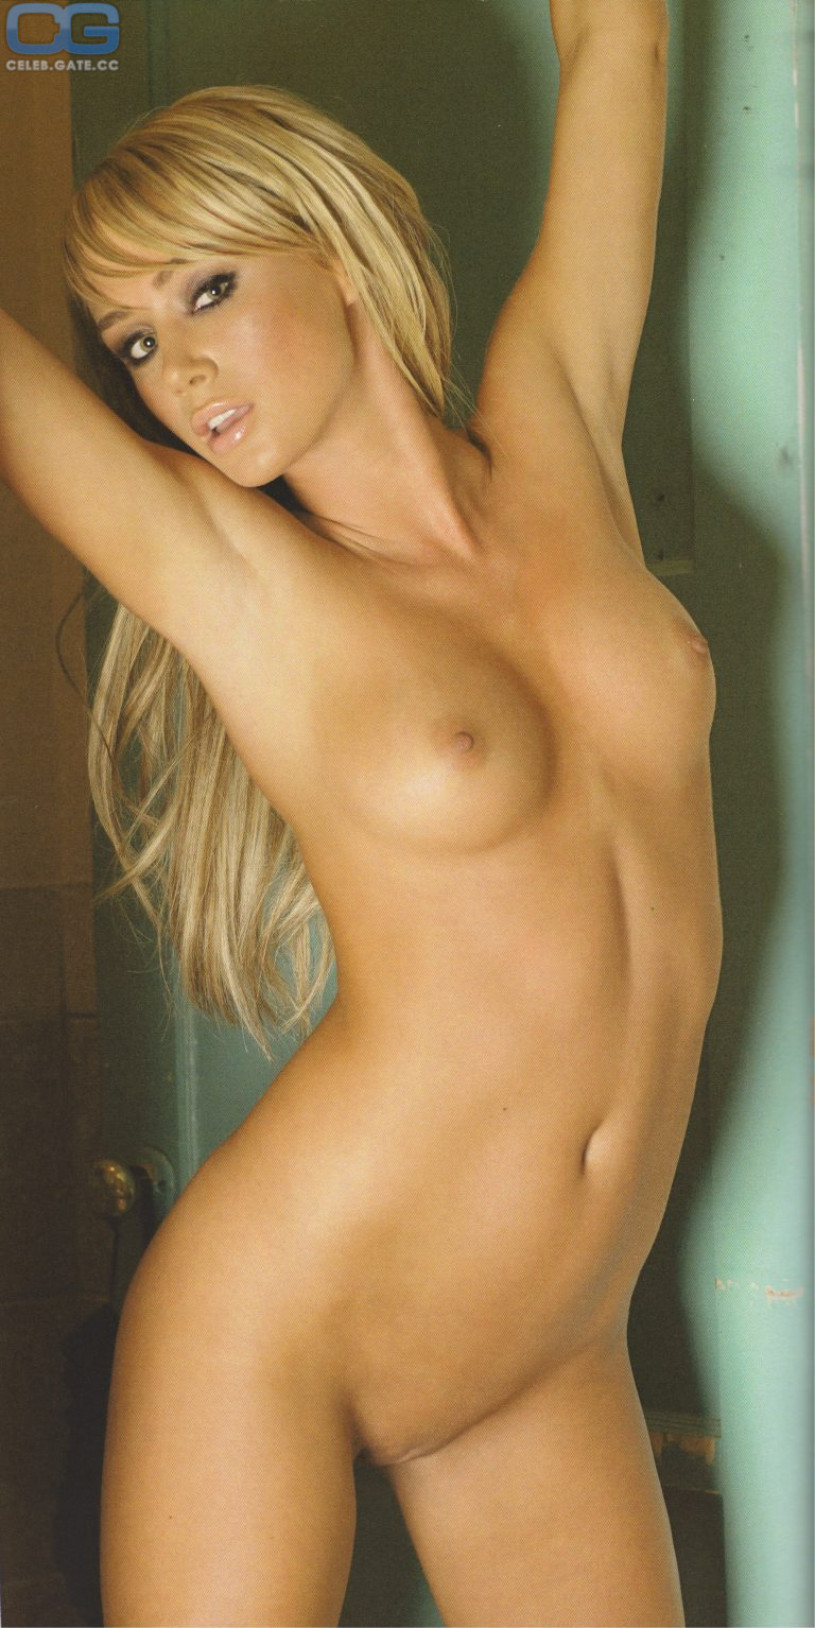 nudes (46 photo), Fappening Celebrity pics